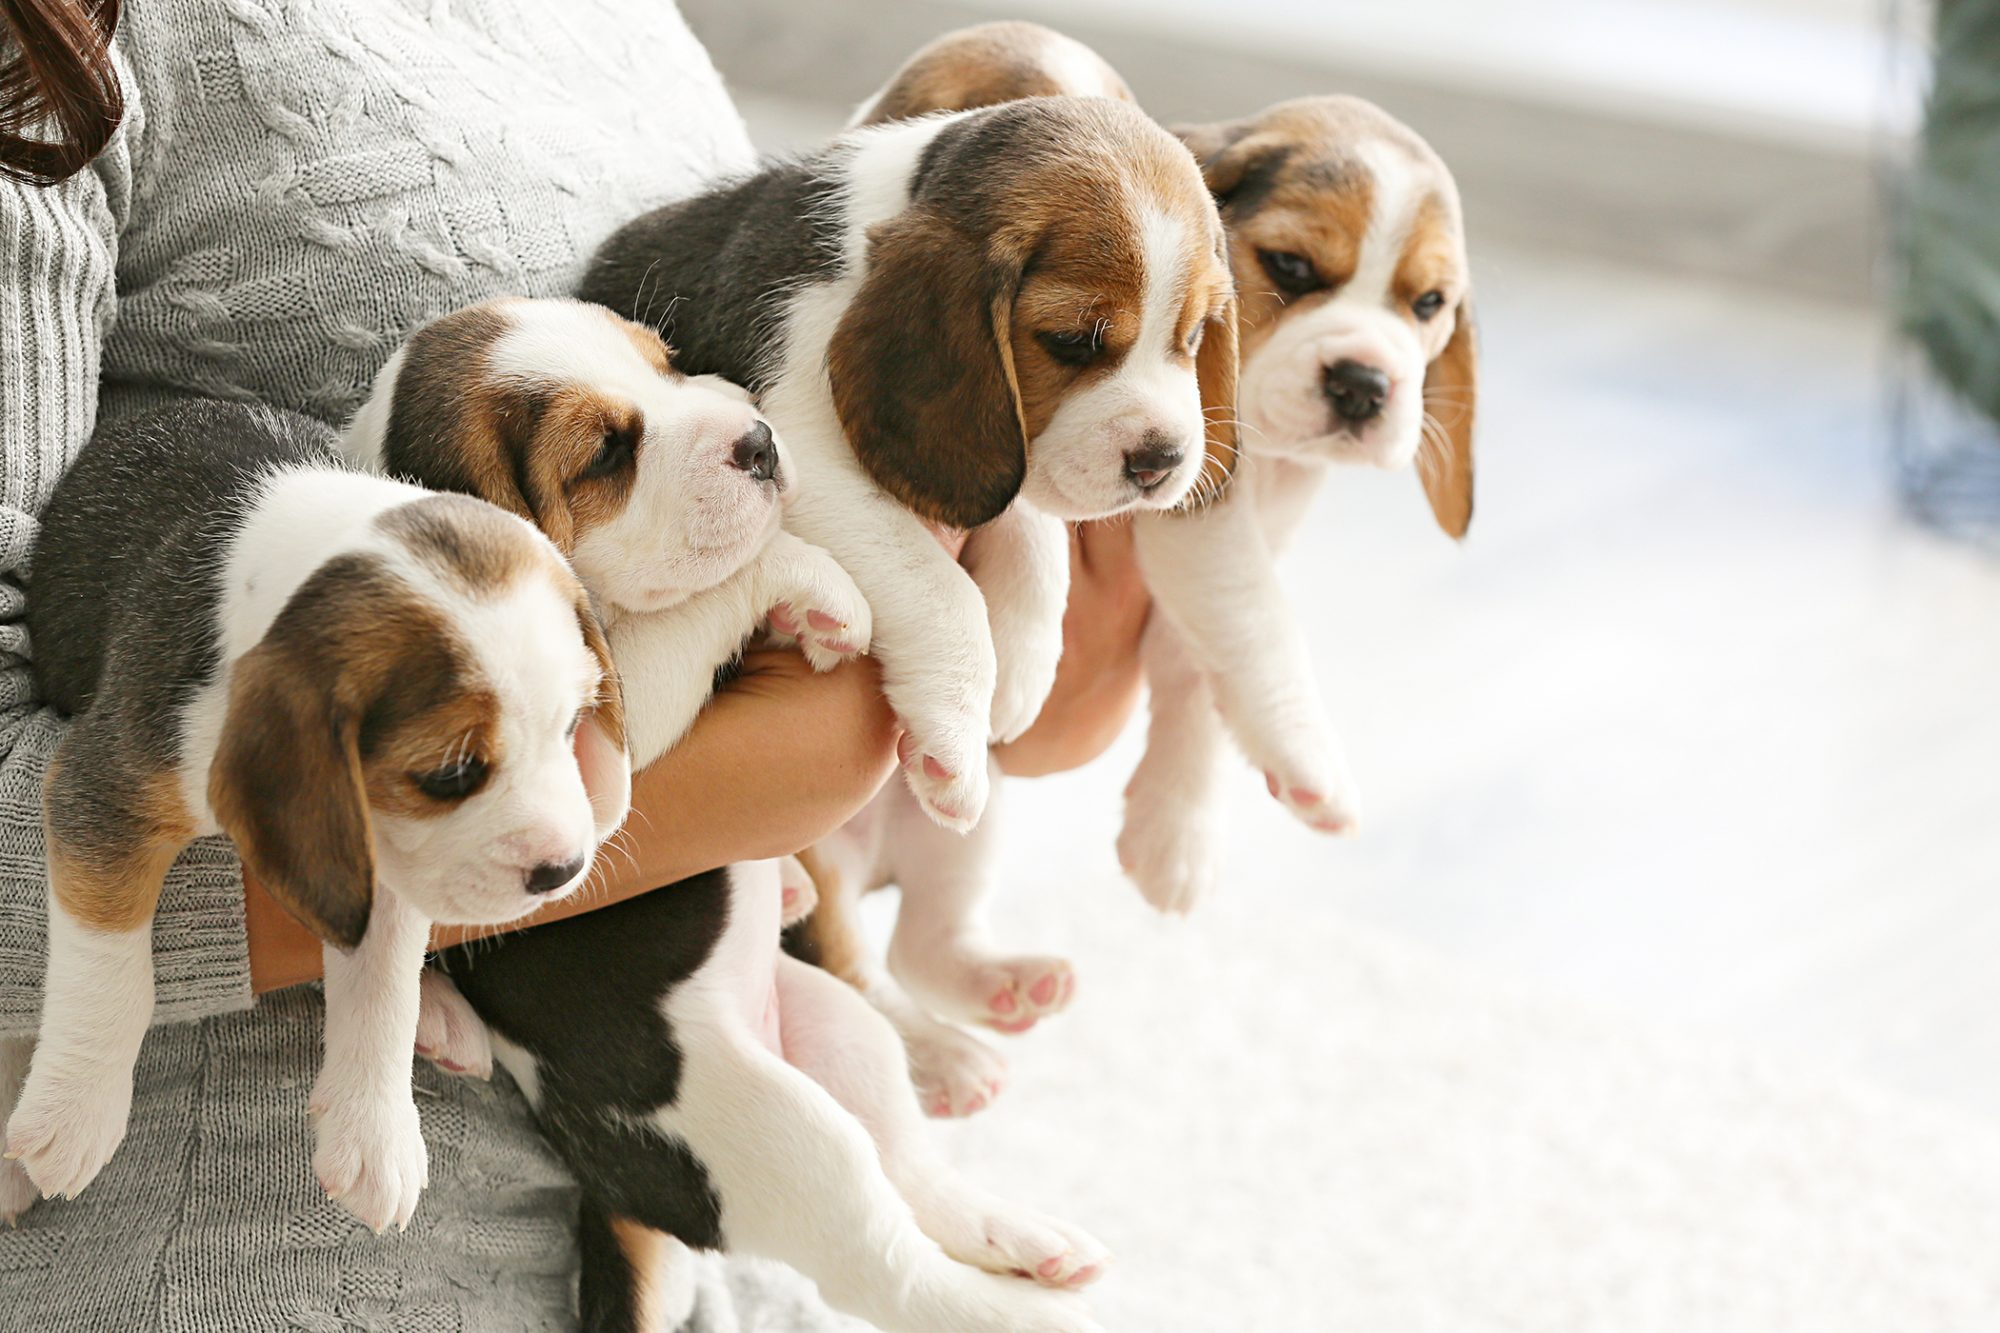 Woman in grey sweater holds five beagle puppies in arms